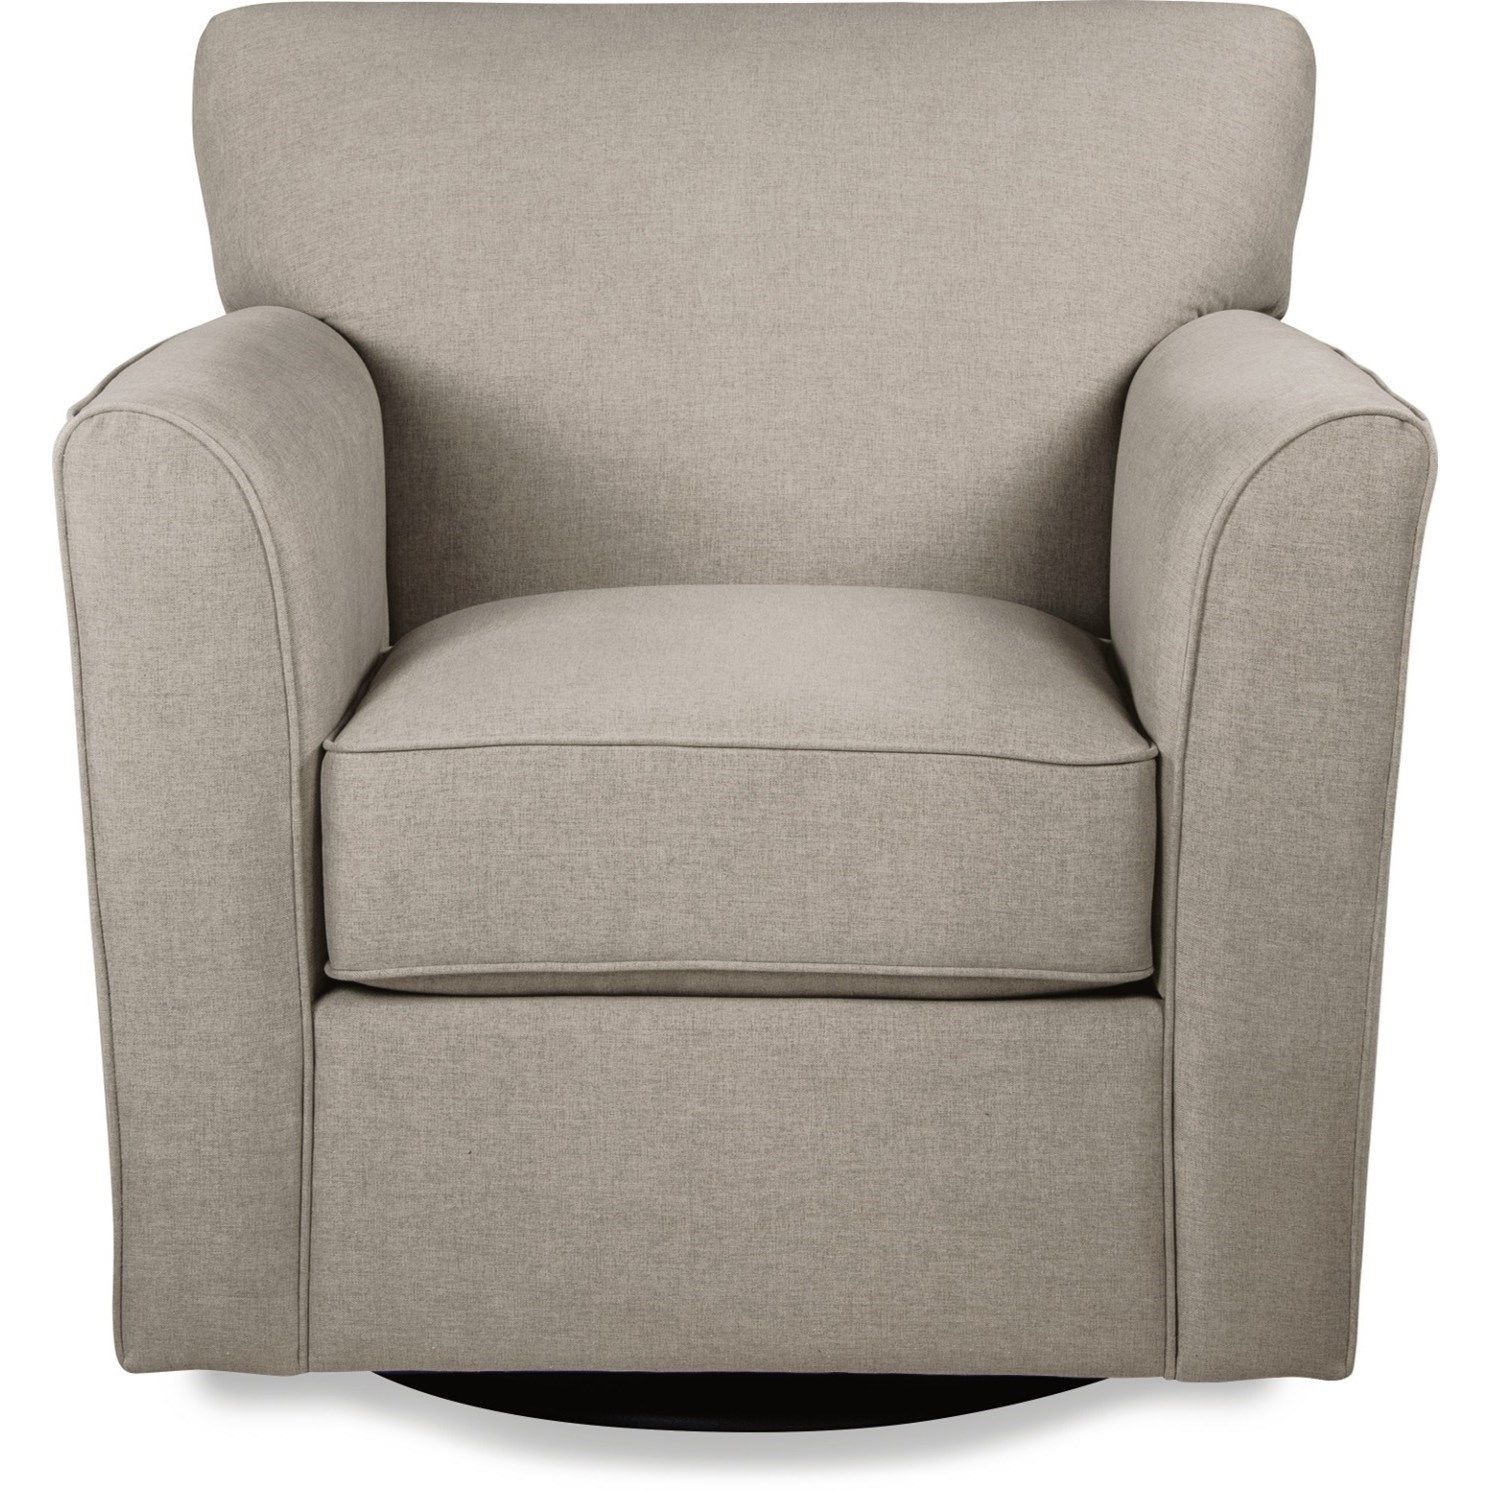 Modern Swivel Occasional Chairs A Chair For Every Occasion